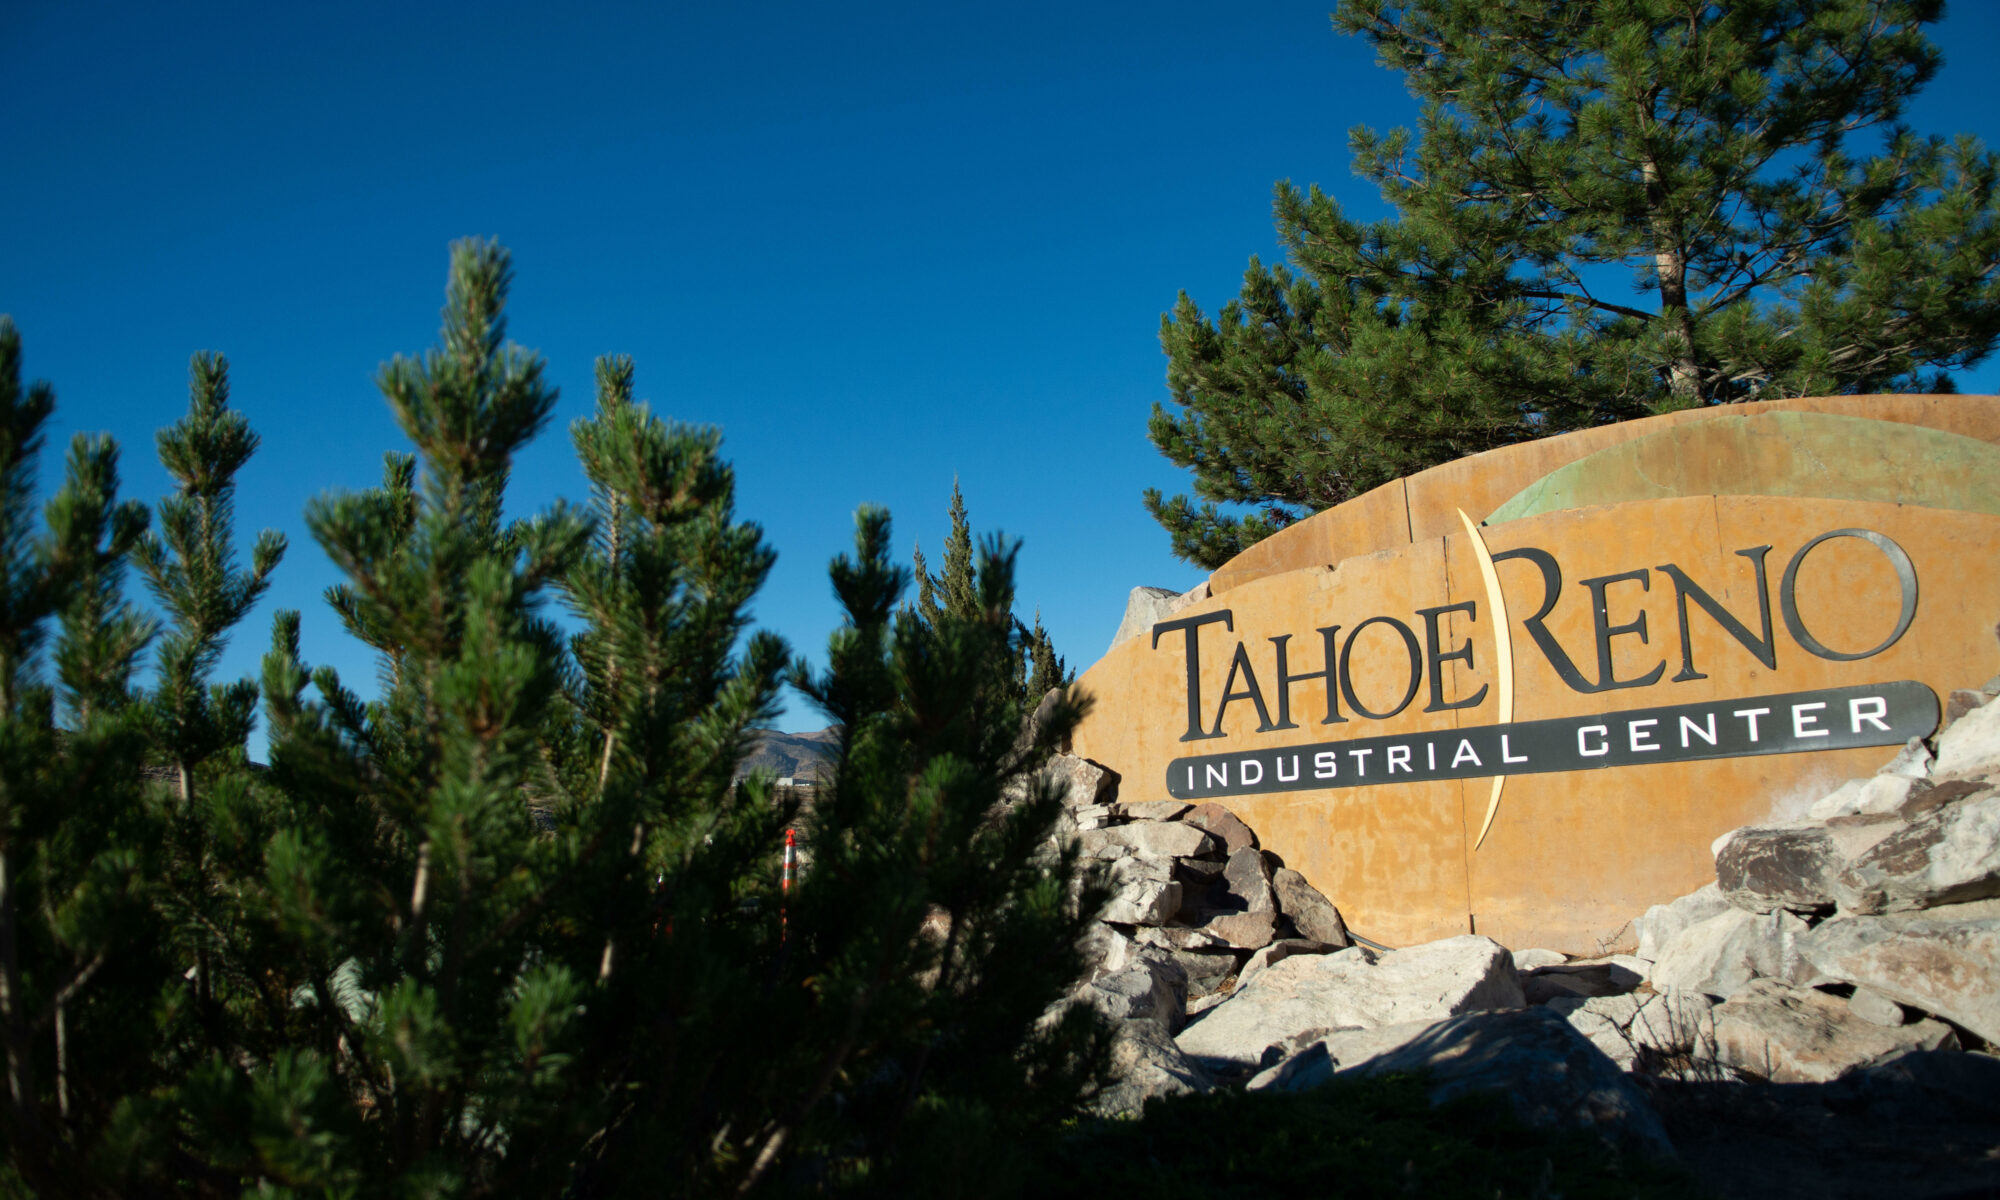 Signage at the entrance to the Tahoe Reno Industrial Center